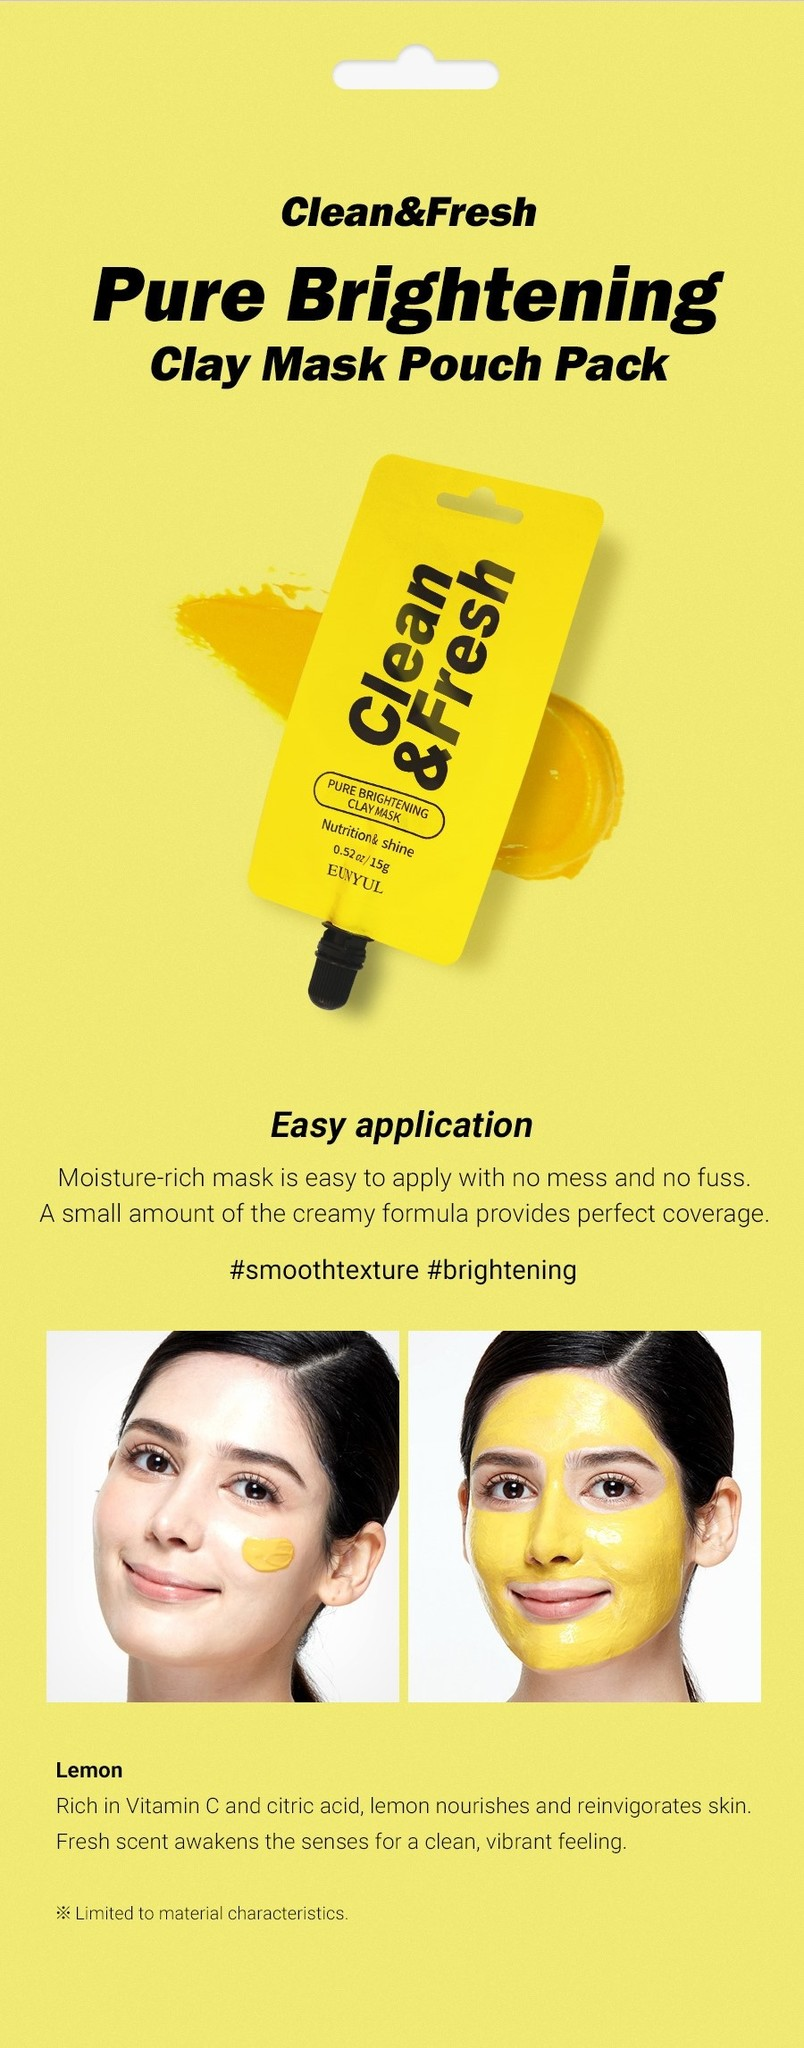 Clean & Fresh Clay Mask Pouch Pack - Pure Brightening-4